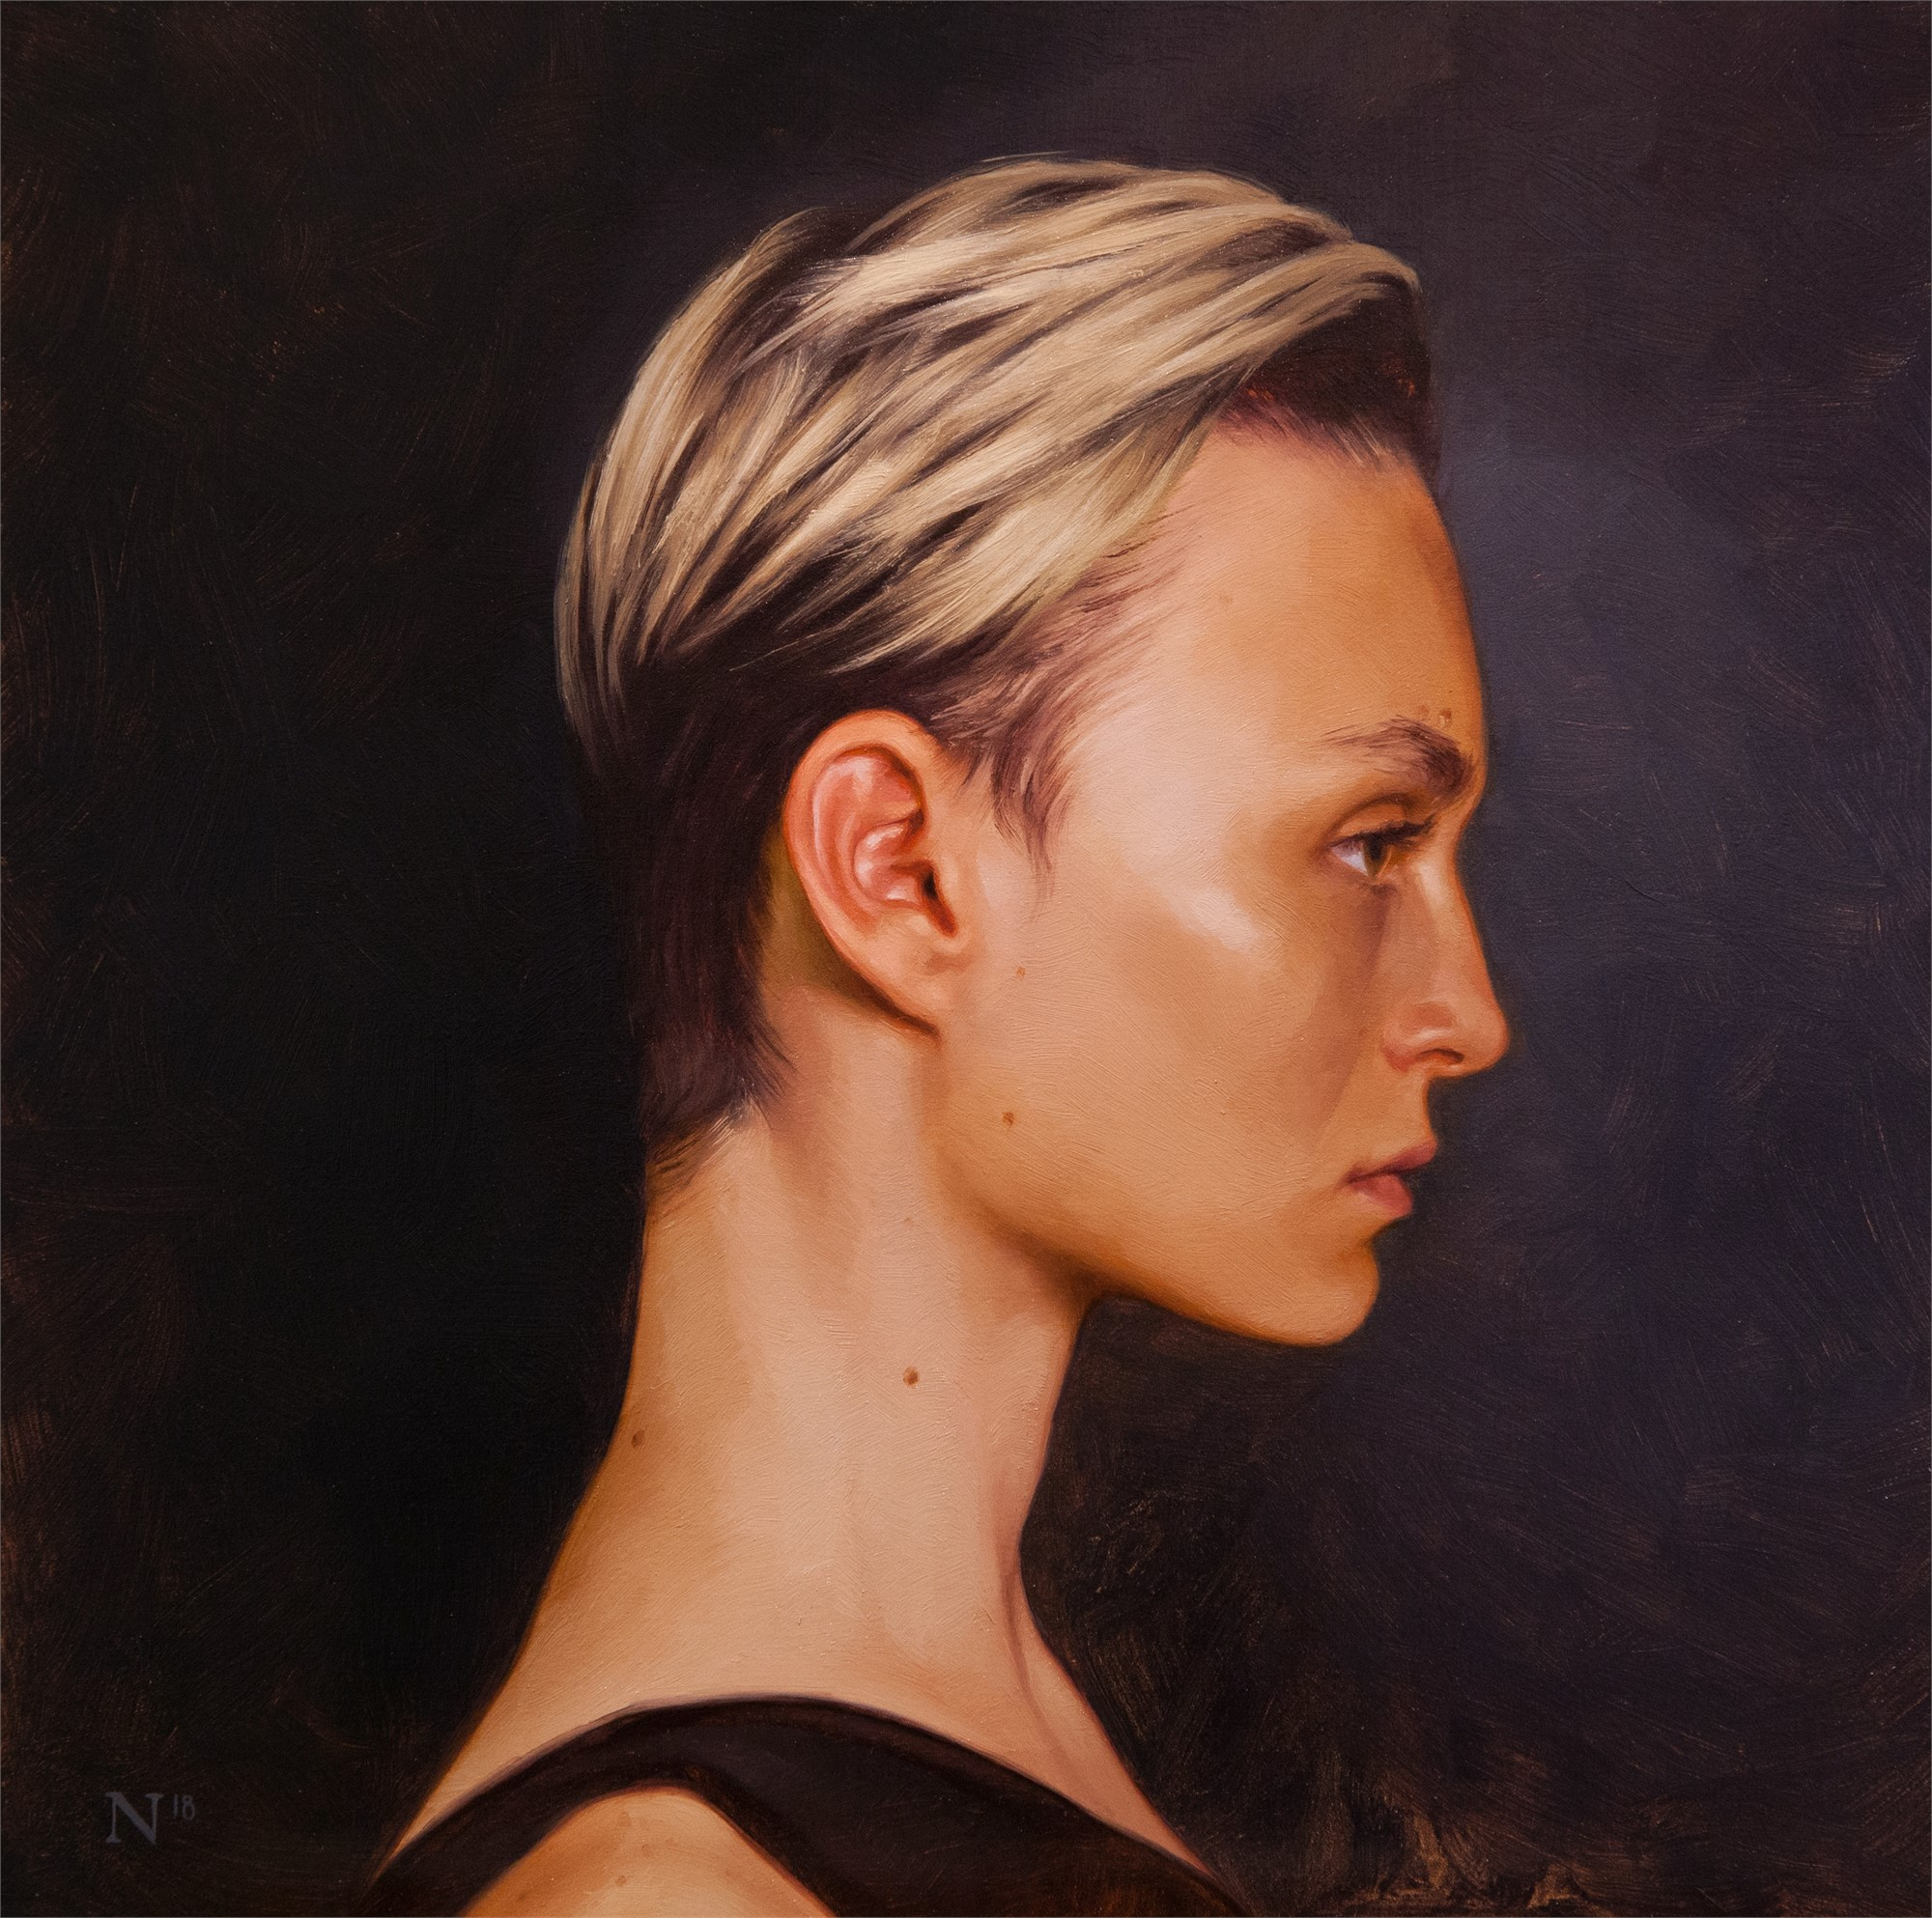 Profile of Alex by Aaron Nagel